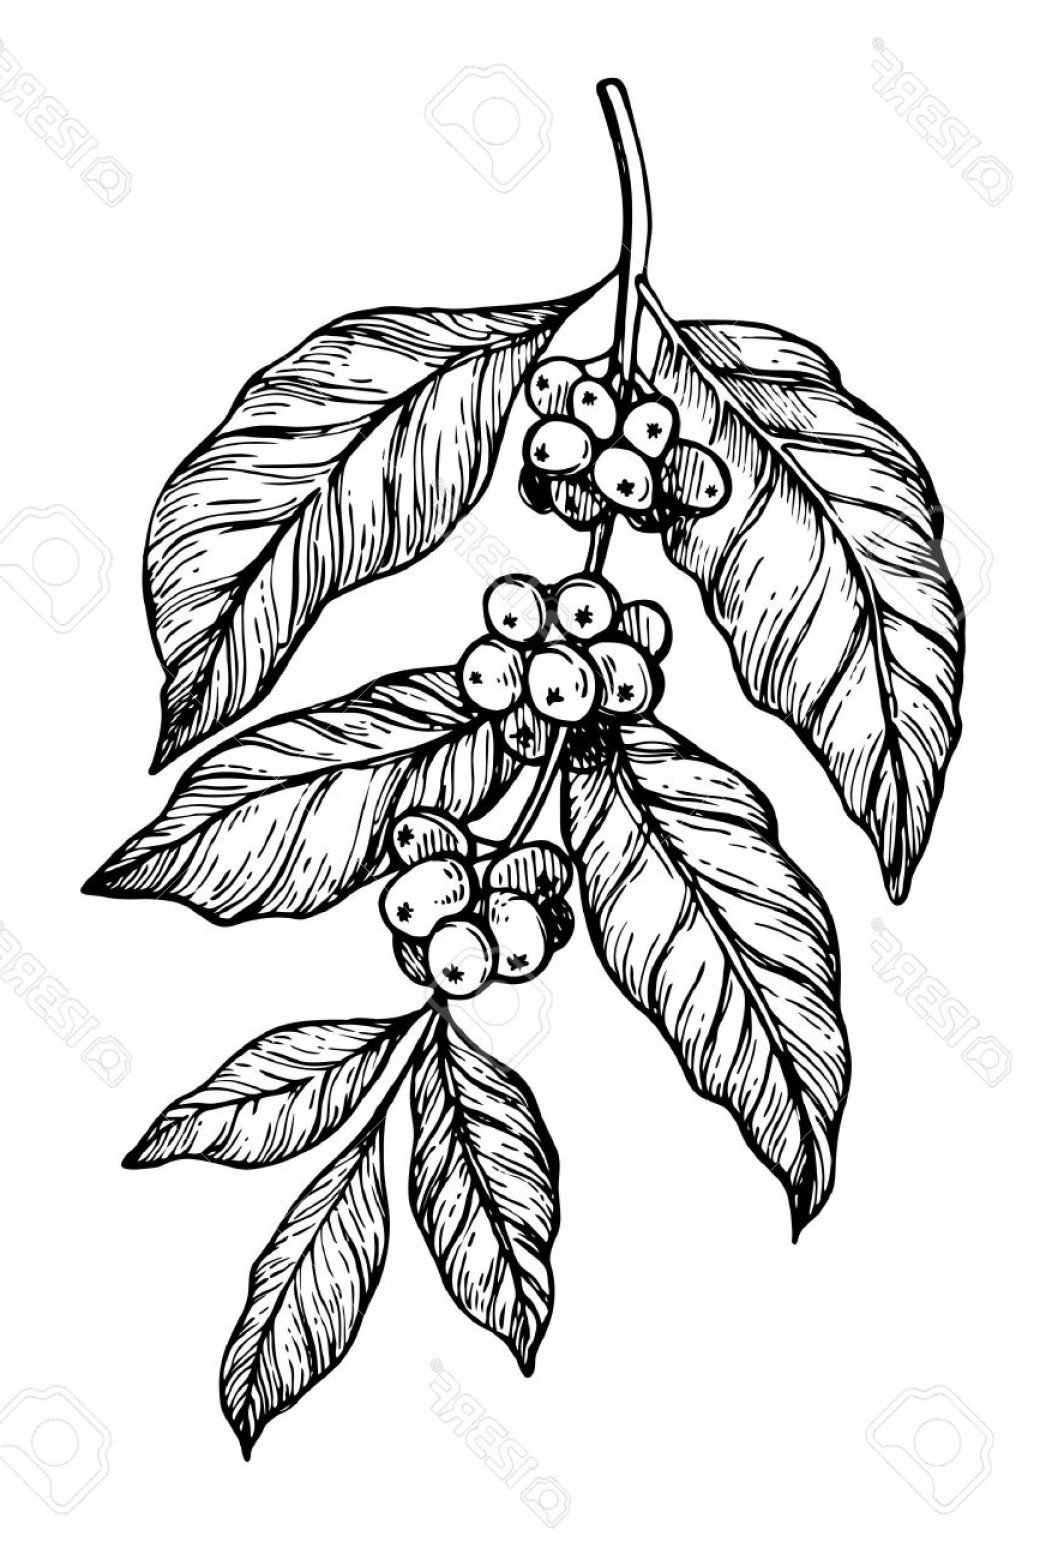 Coffee Tree Vector: Photostock Vector Coffee Tree Branch Freehand Pencil Drawing Isolated On White Background Vector Illustration Cafe Or